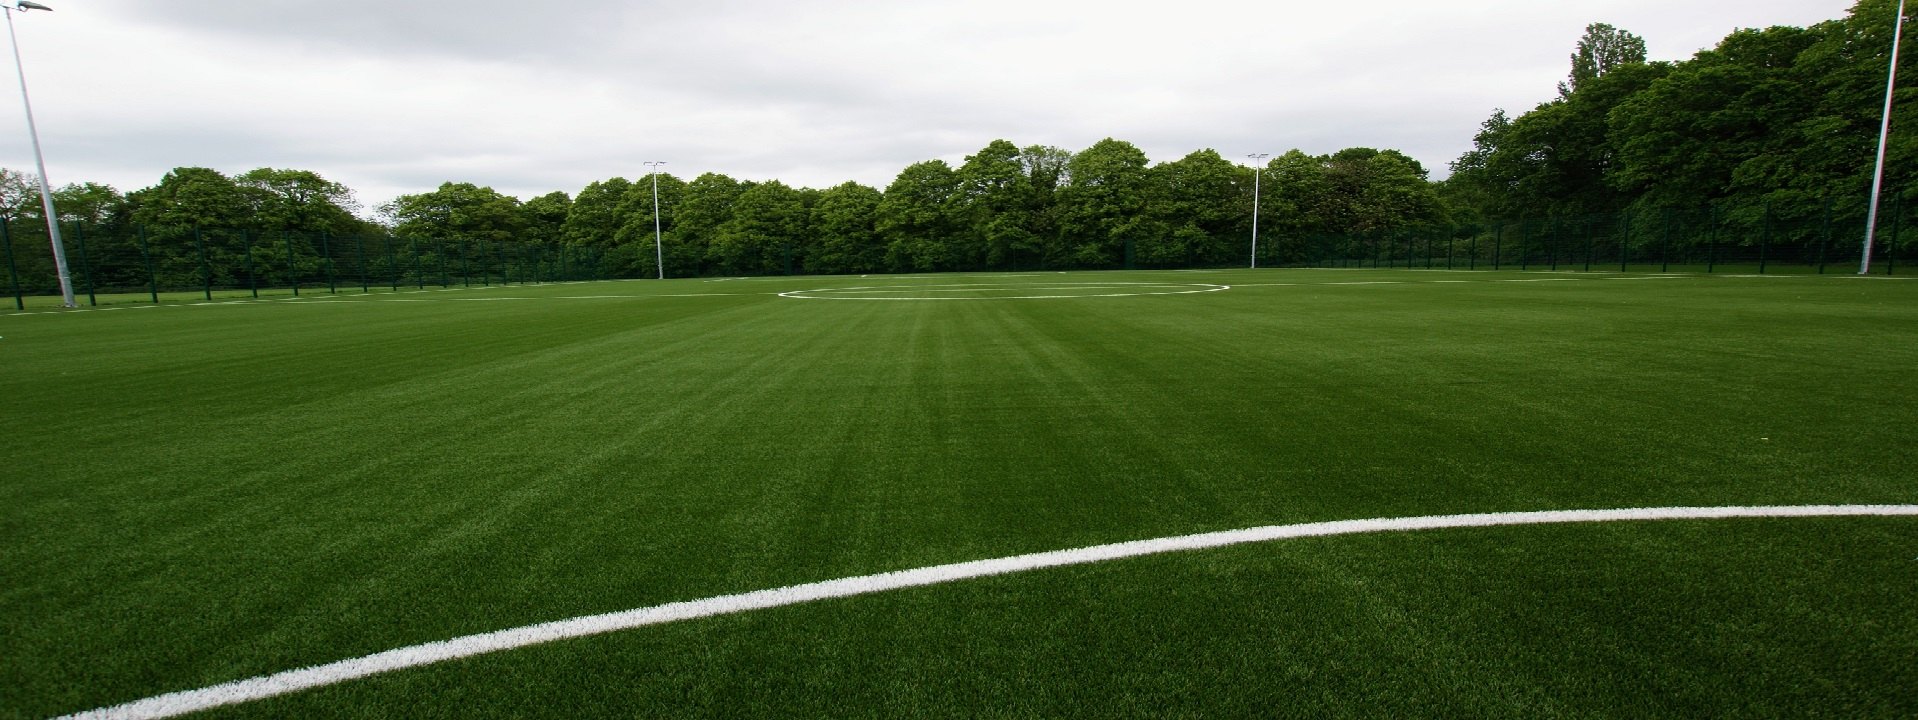 We are now taking bookings for our NEW 3G ASTRO